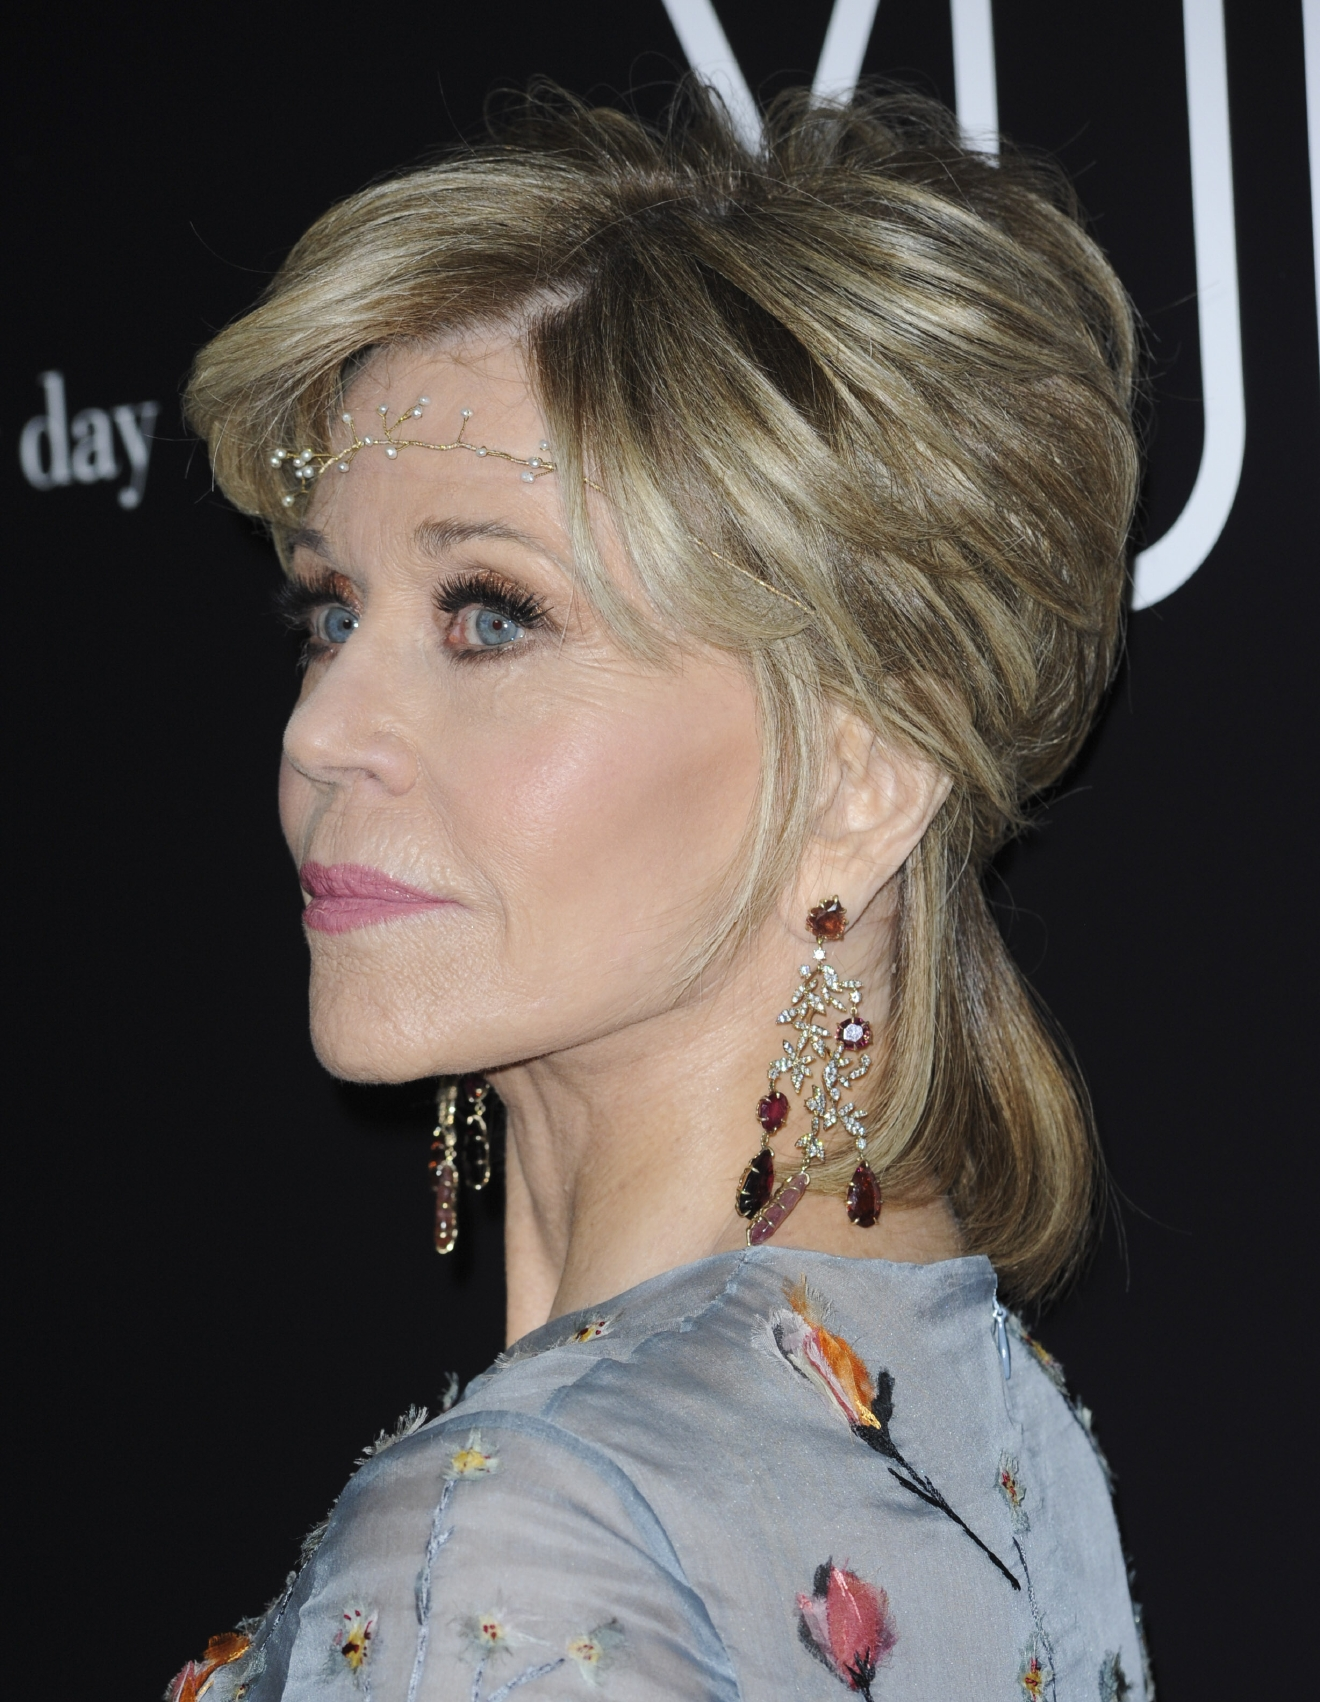 Los Angeles premiere of 'Youth' held at Directors Guild Theatre - Arrivals  Featuring: Jane Fonda Where: Los Angeles, California, United States When: 18 Nov 2015 Credit: Apega/WENN.com